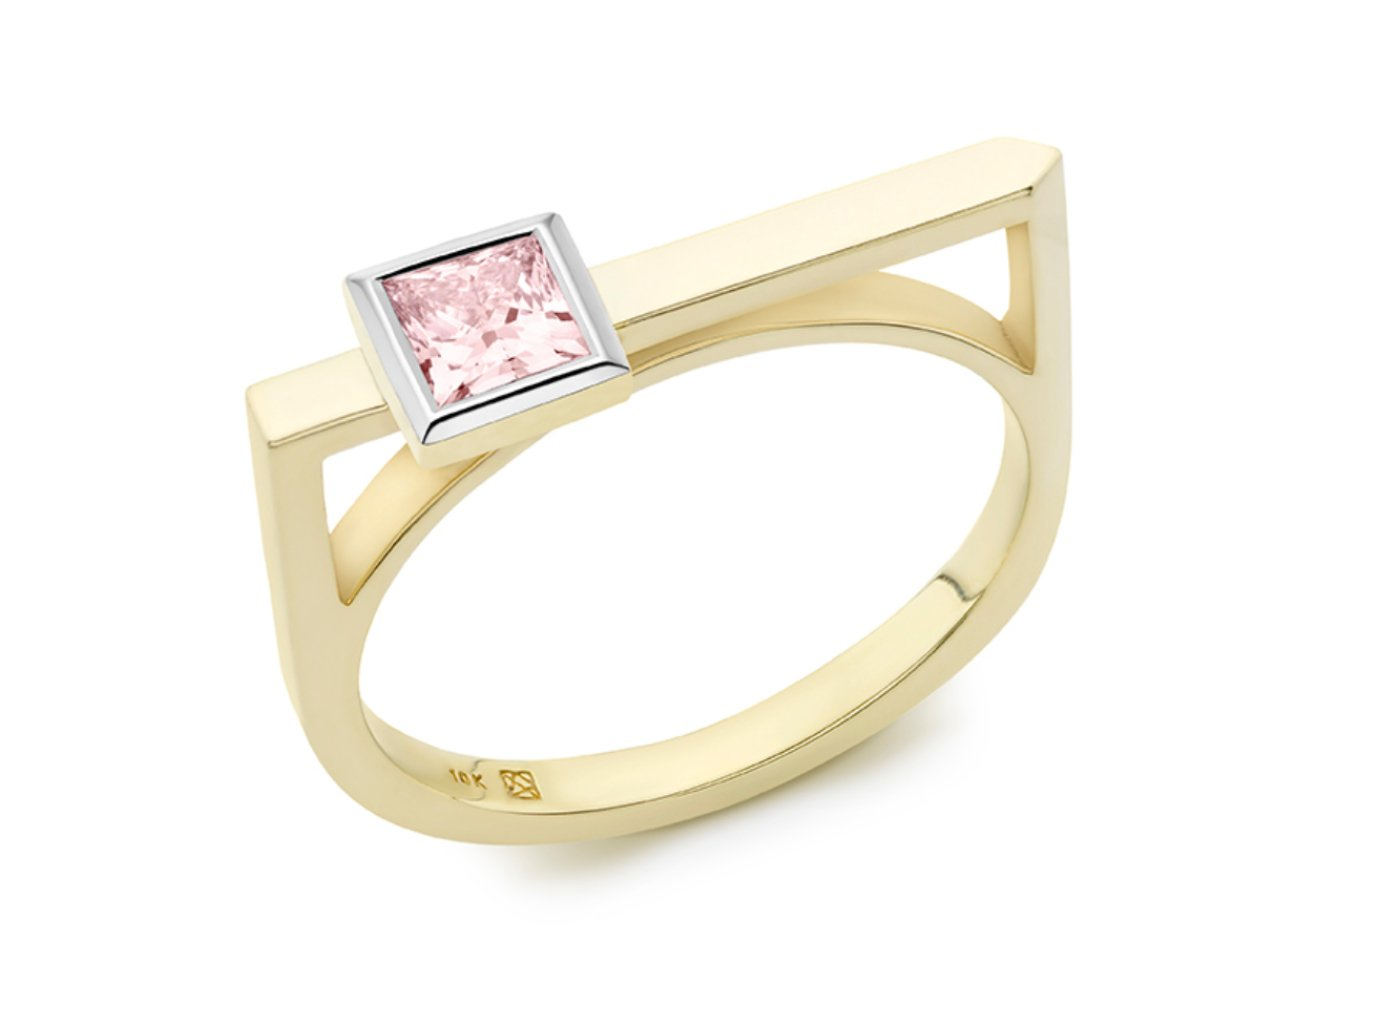 Side view of Princess linear 3/8 carat ring with pink diamond